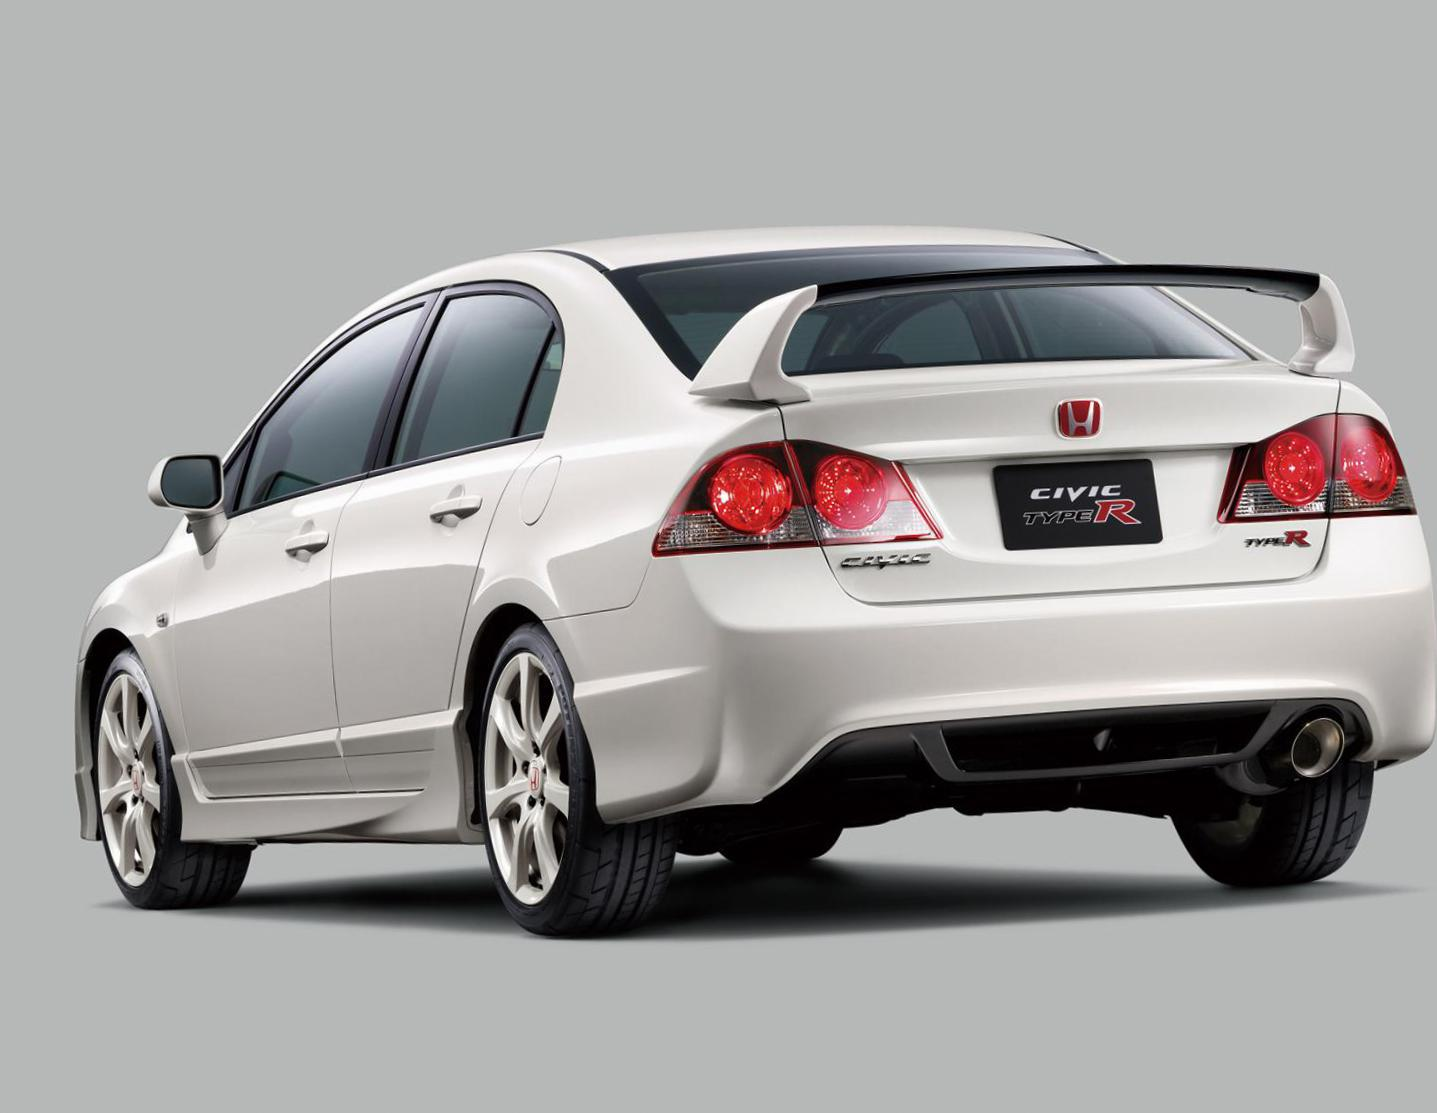 Civic Type R Honda lease 2008